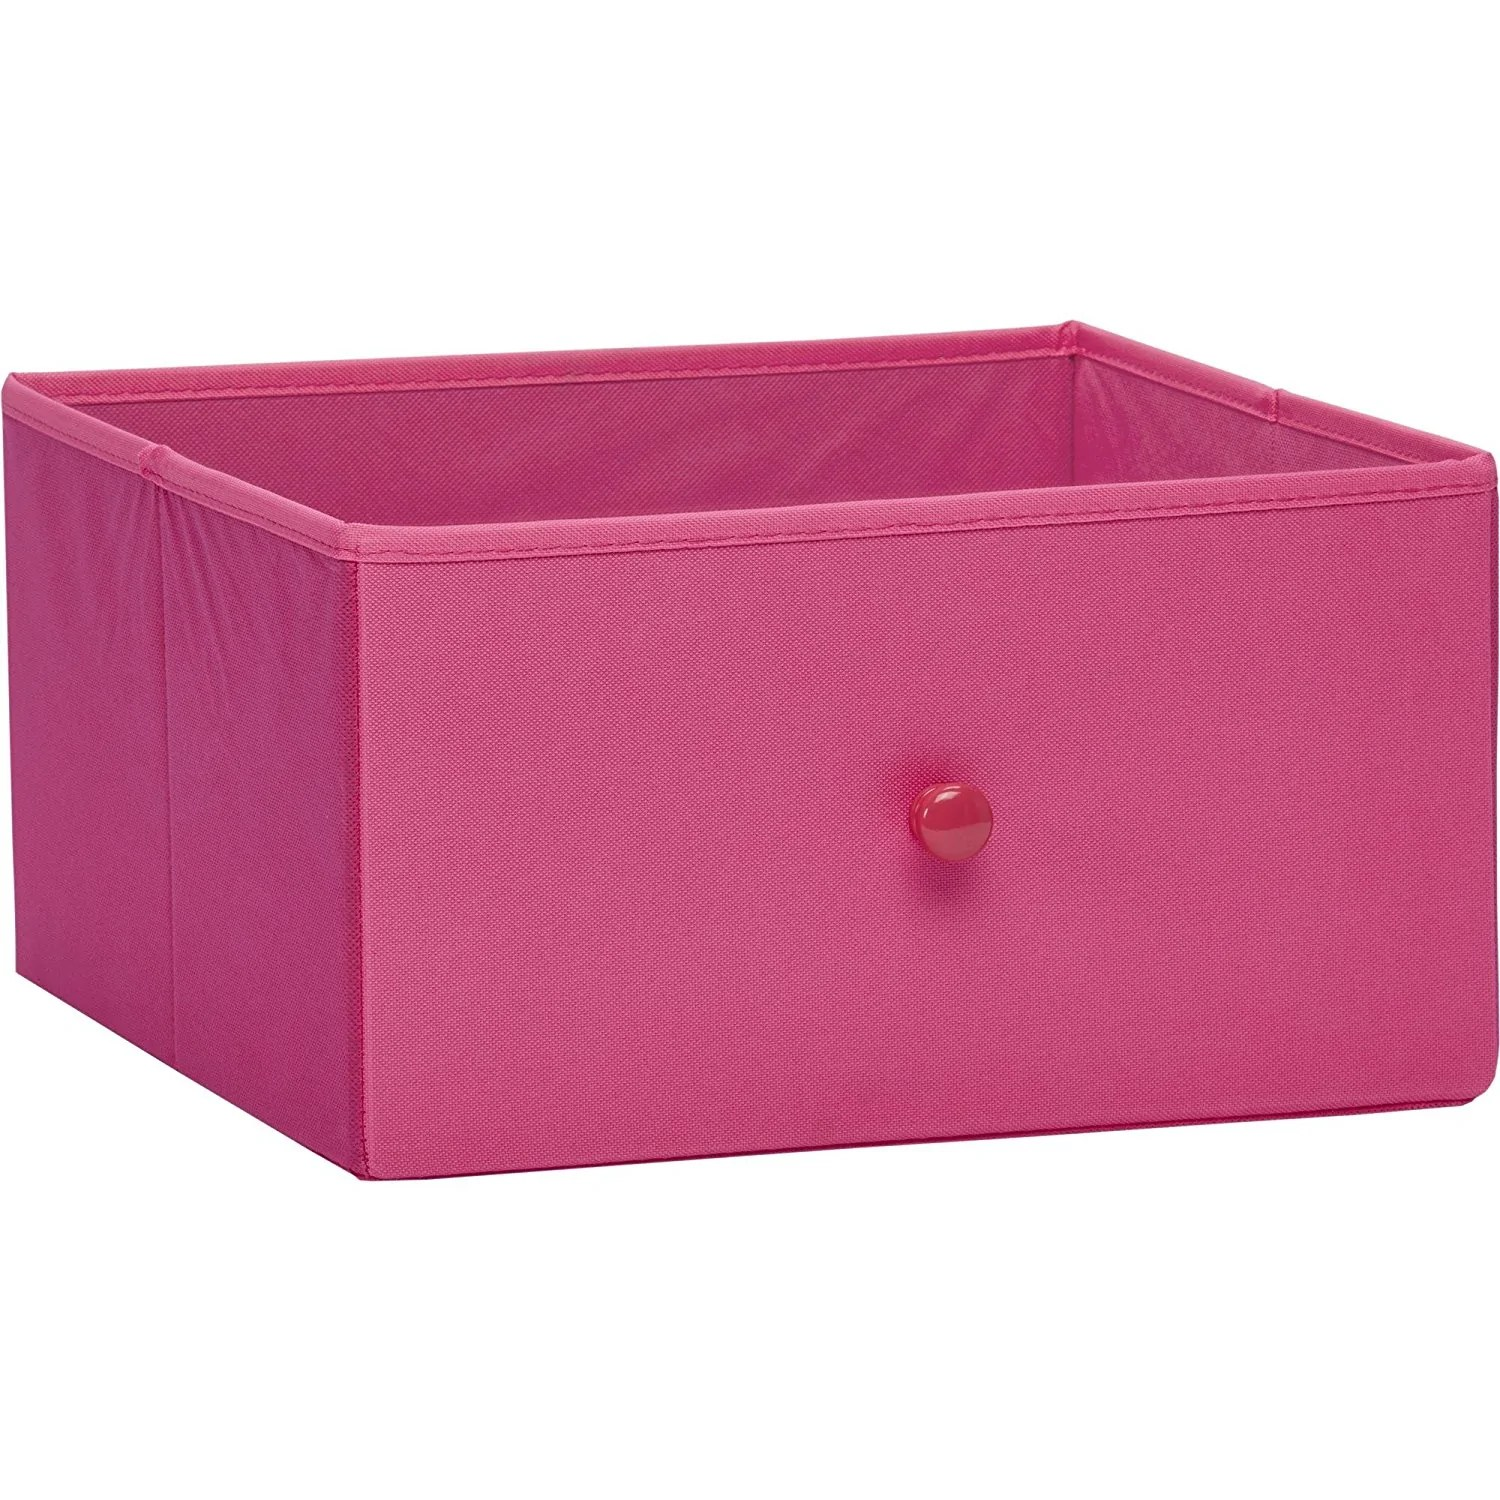 Pink Bins Cosco Kids Furniture Applegate Armoire With Fabric Bins Enchanted Pine